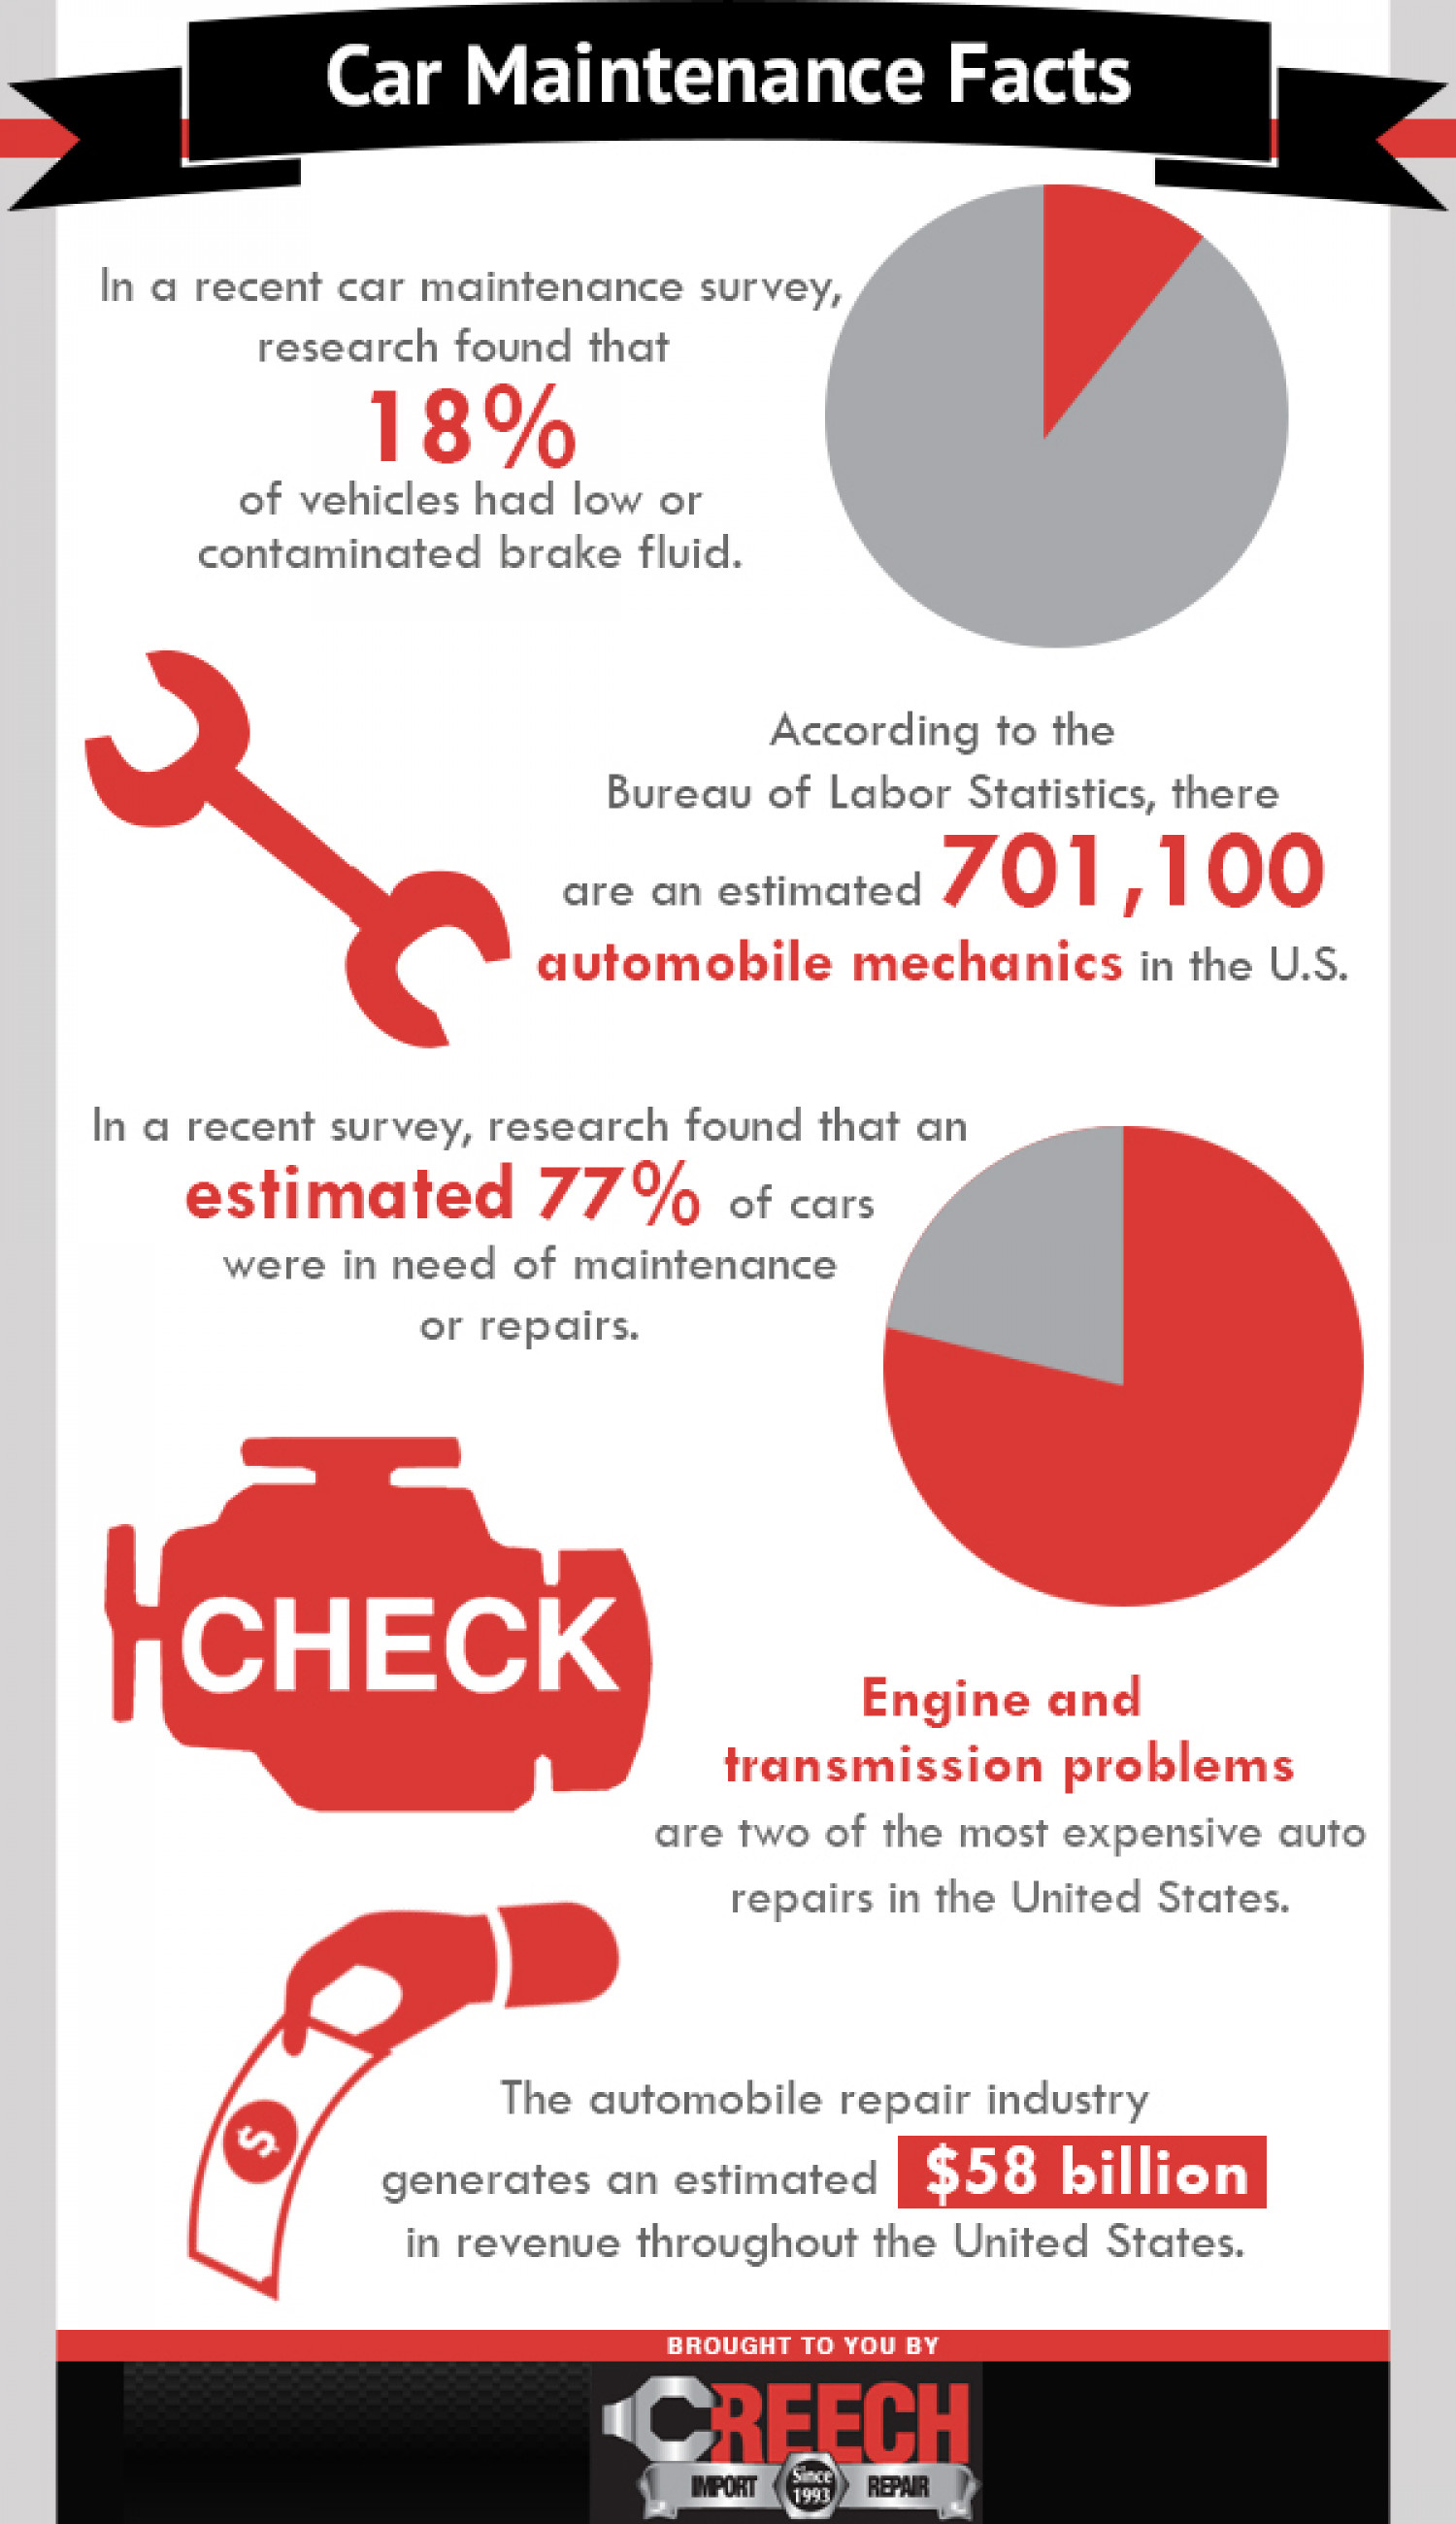 Car Maintenance Facts Infographic